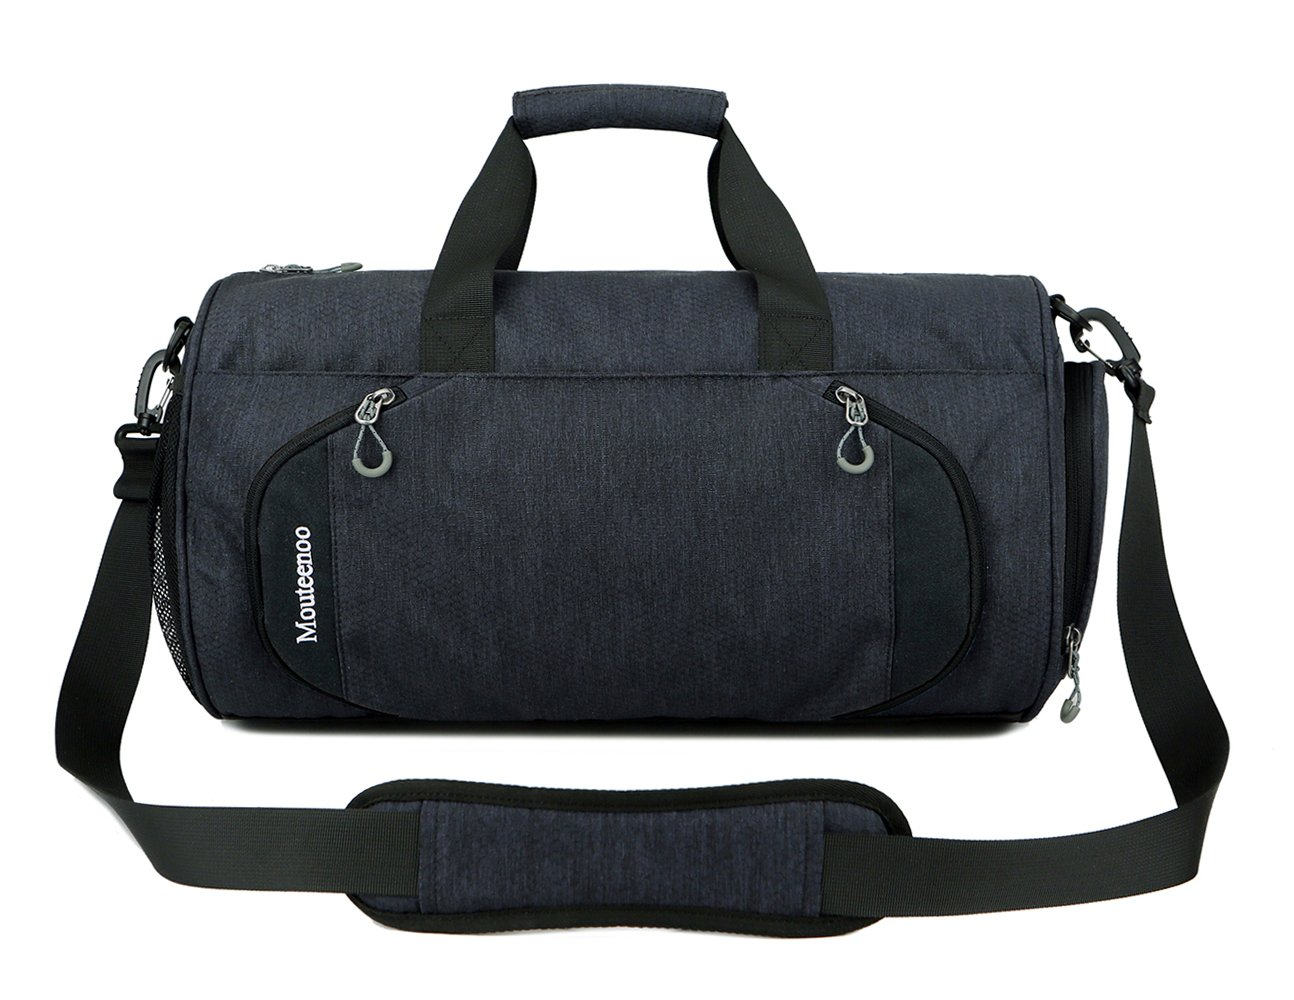 Gym Sports Small Duffel Bag for Men and Women with Shoes Compartment - Mouteenoo (X-Small, Black/Black)